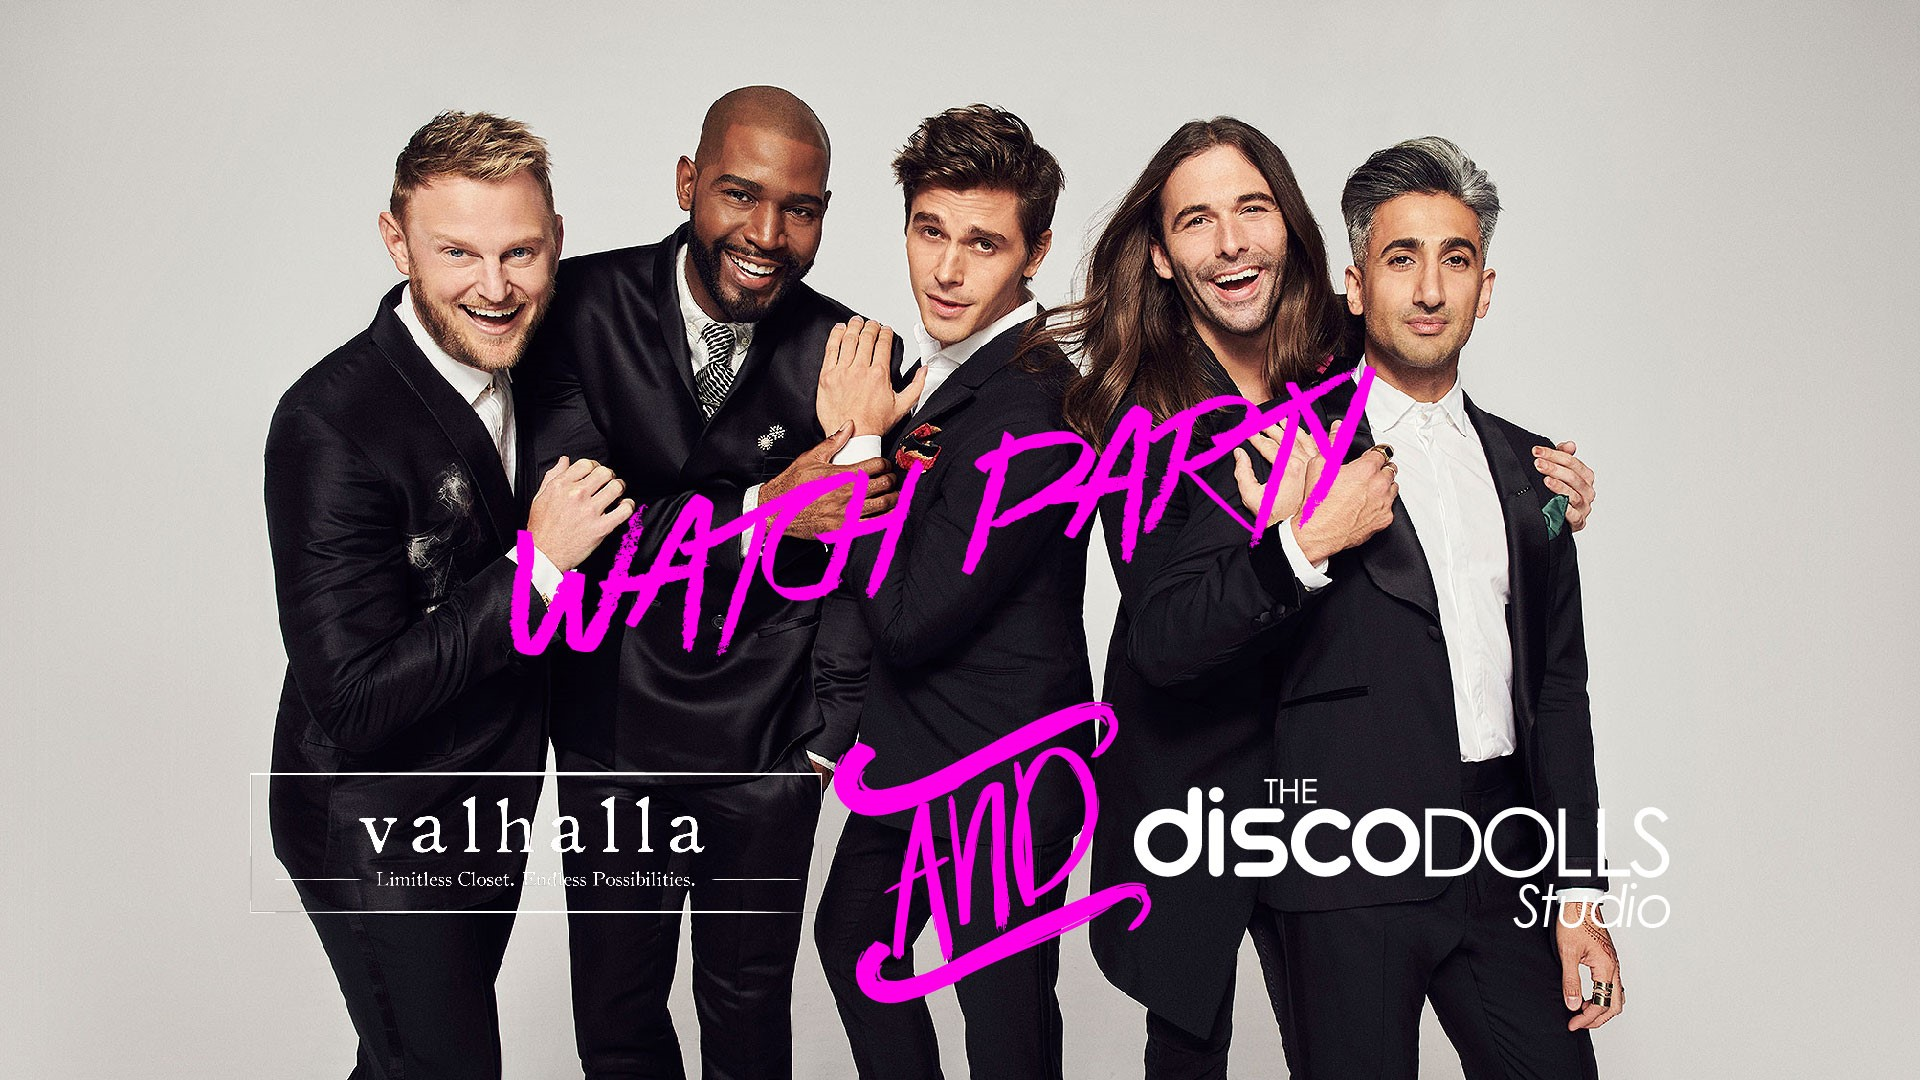 Queer Eye Watch Party at Disco Dolls Studio